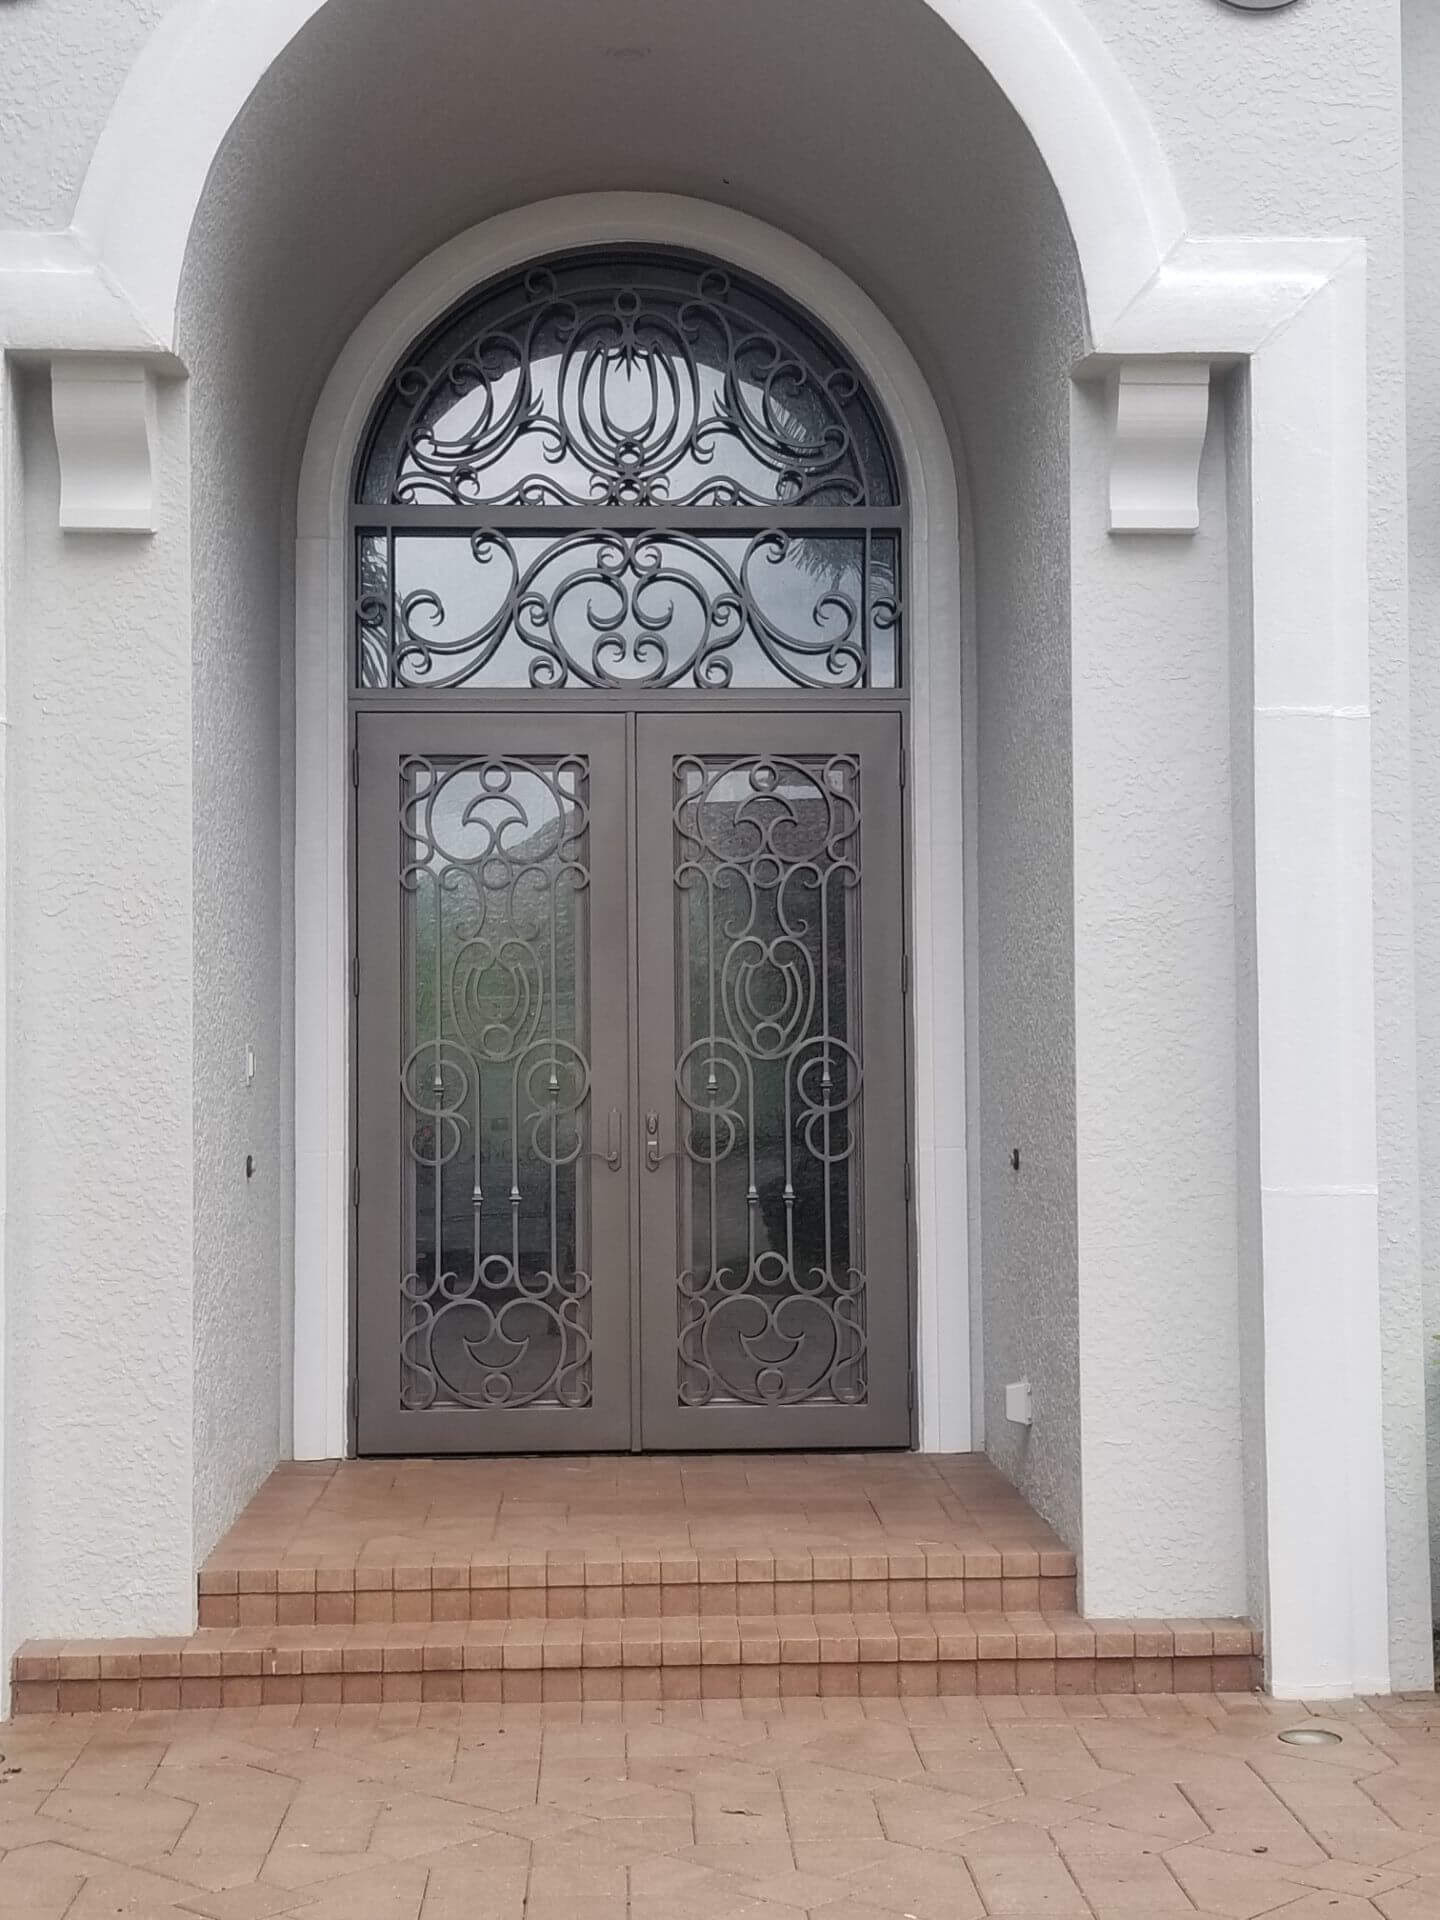 Cantera Door and transoms painted using metallic paint